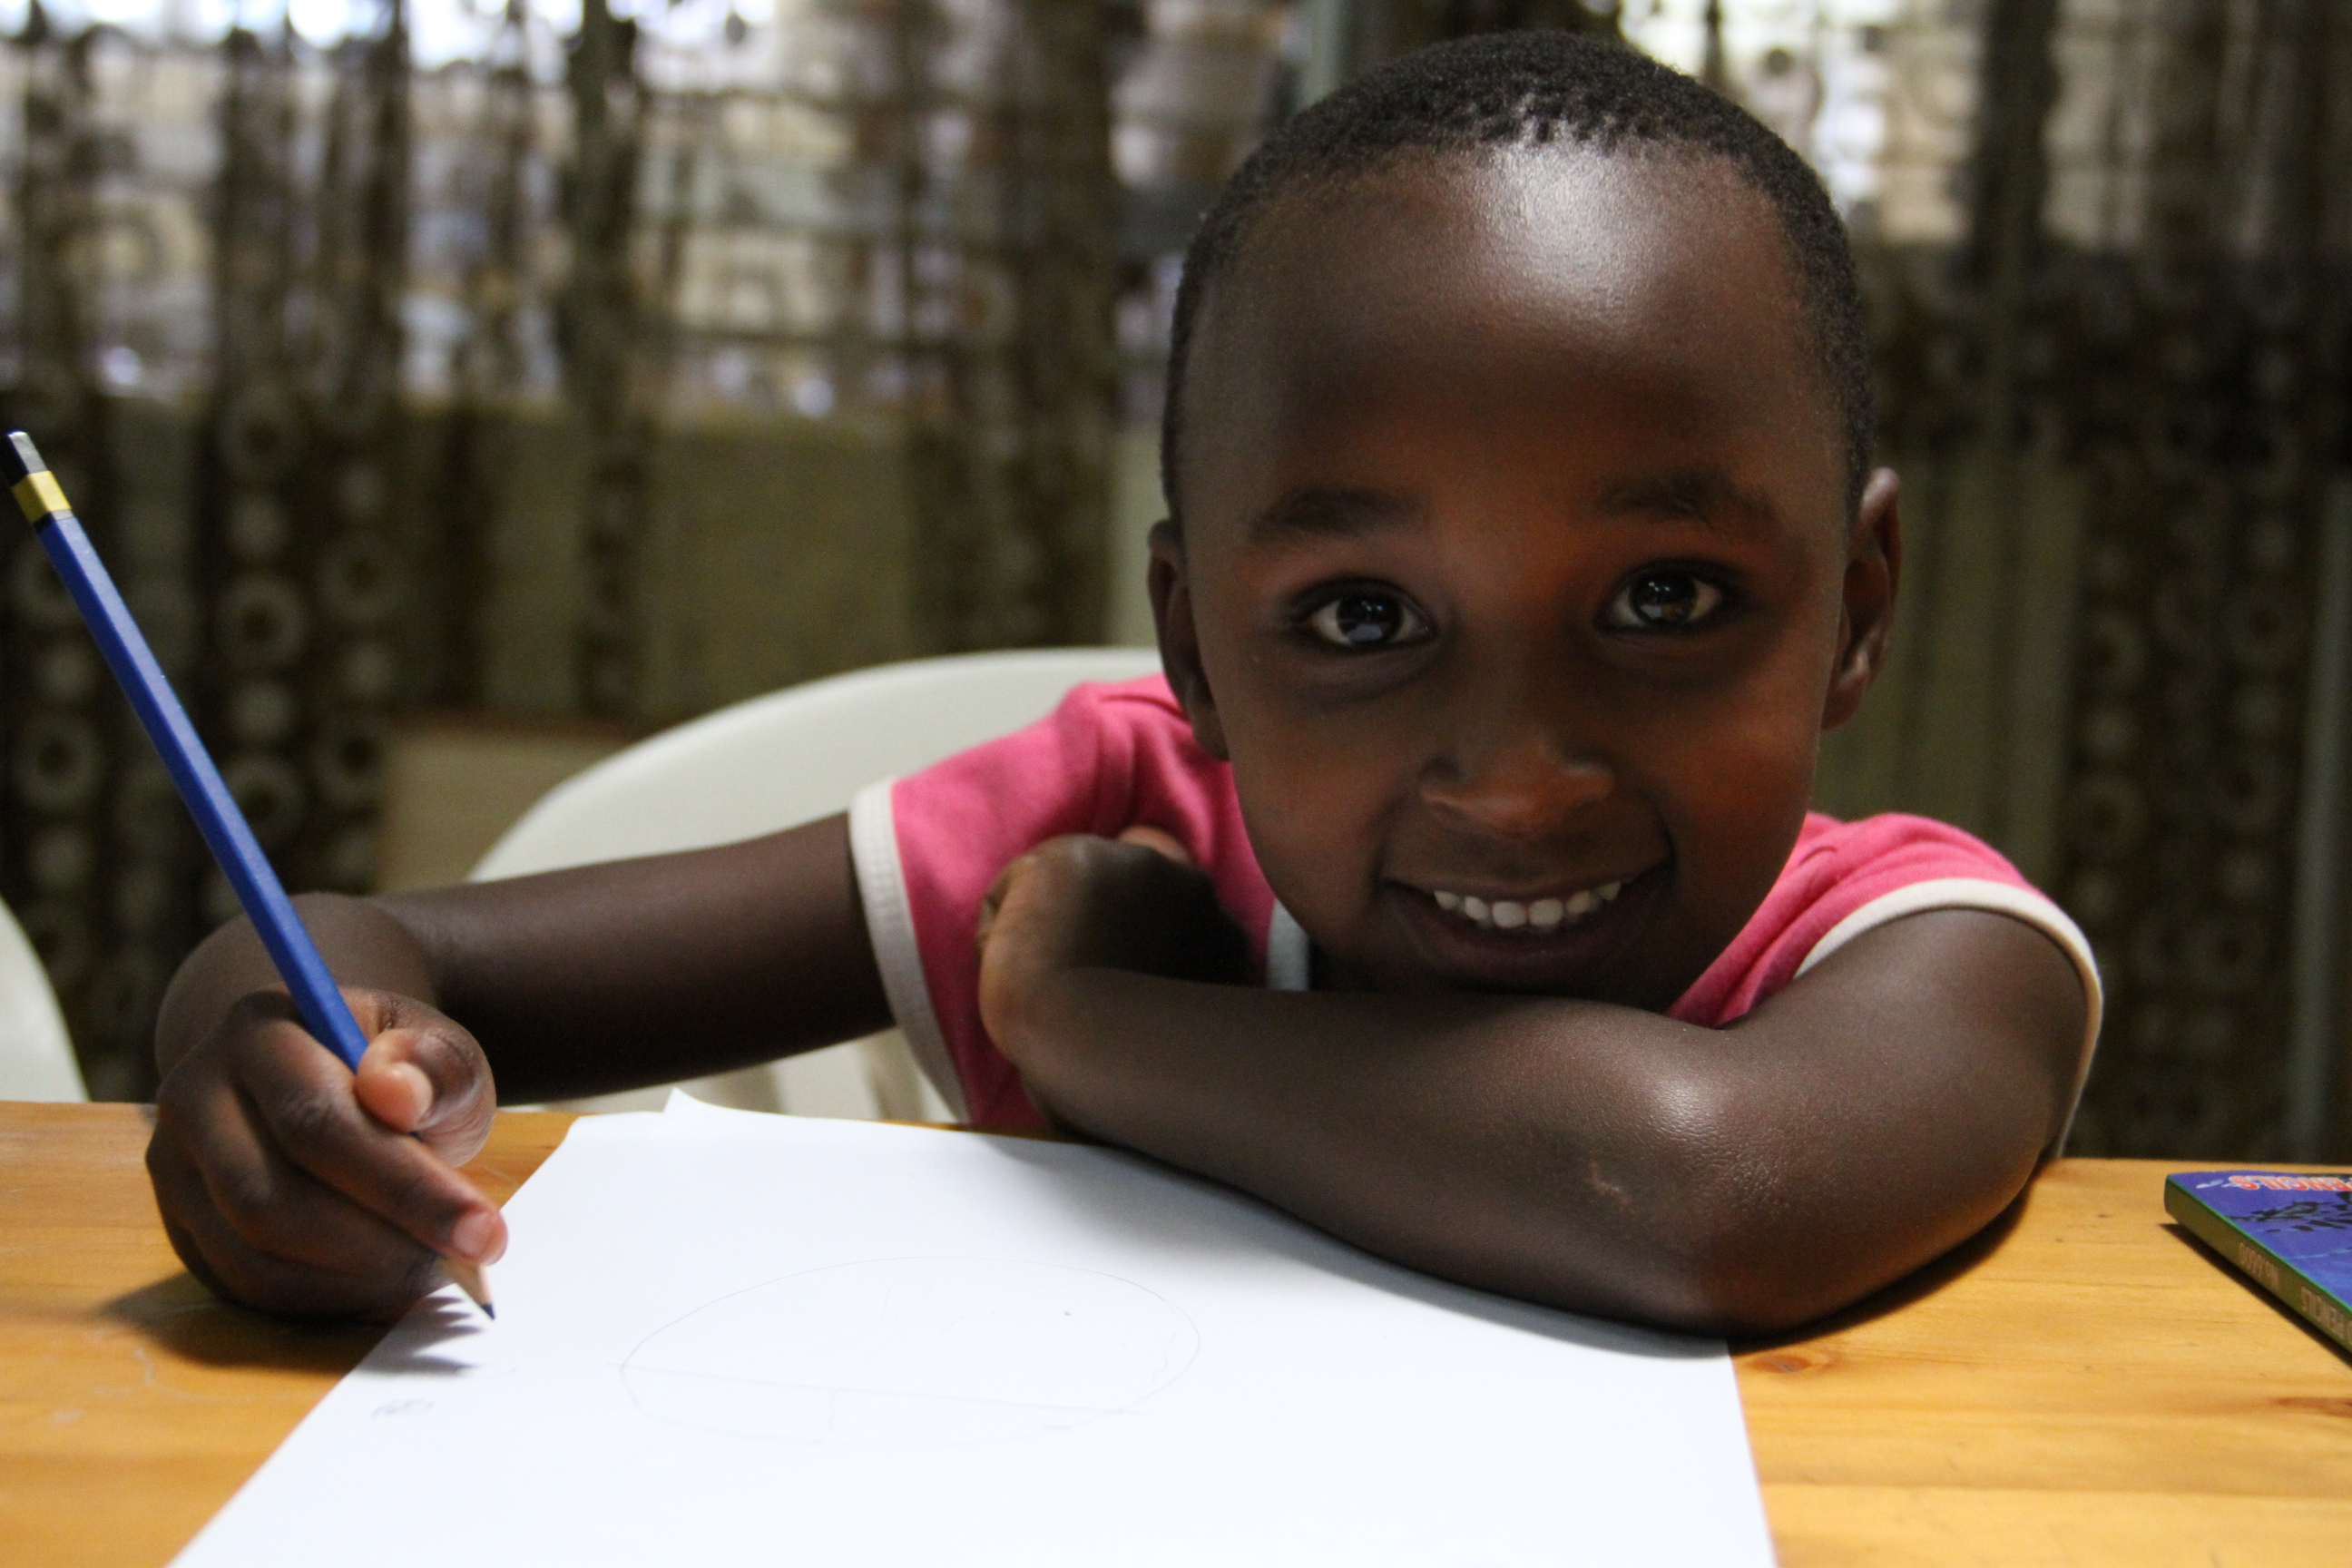 Children participate in a national drawing contest on A Better World for Children during CRC@25 celebrations in Burundi